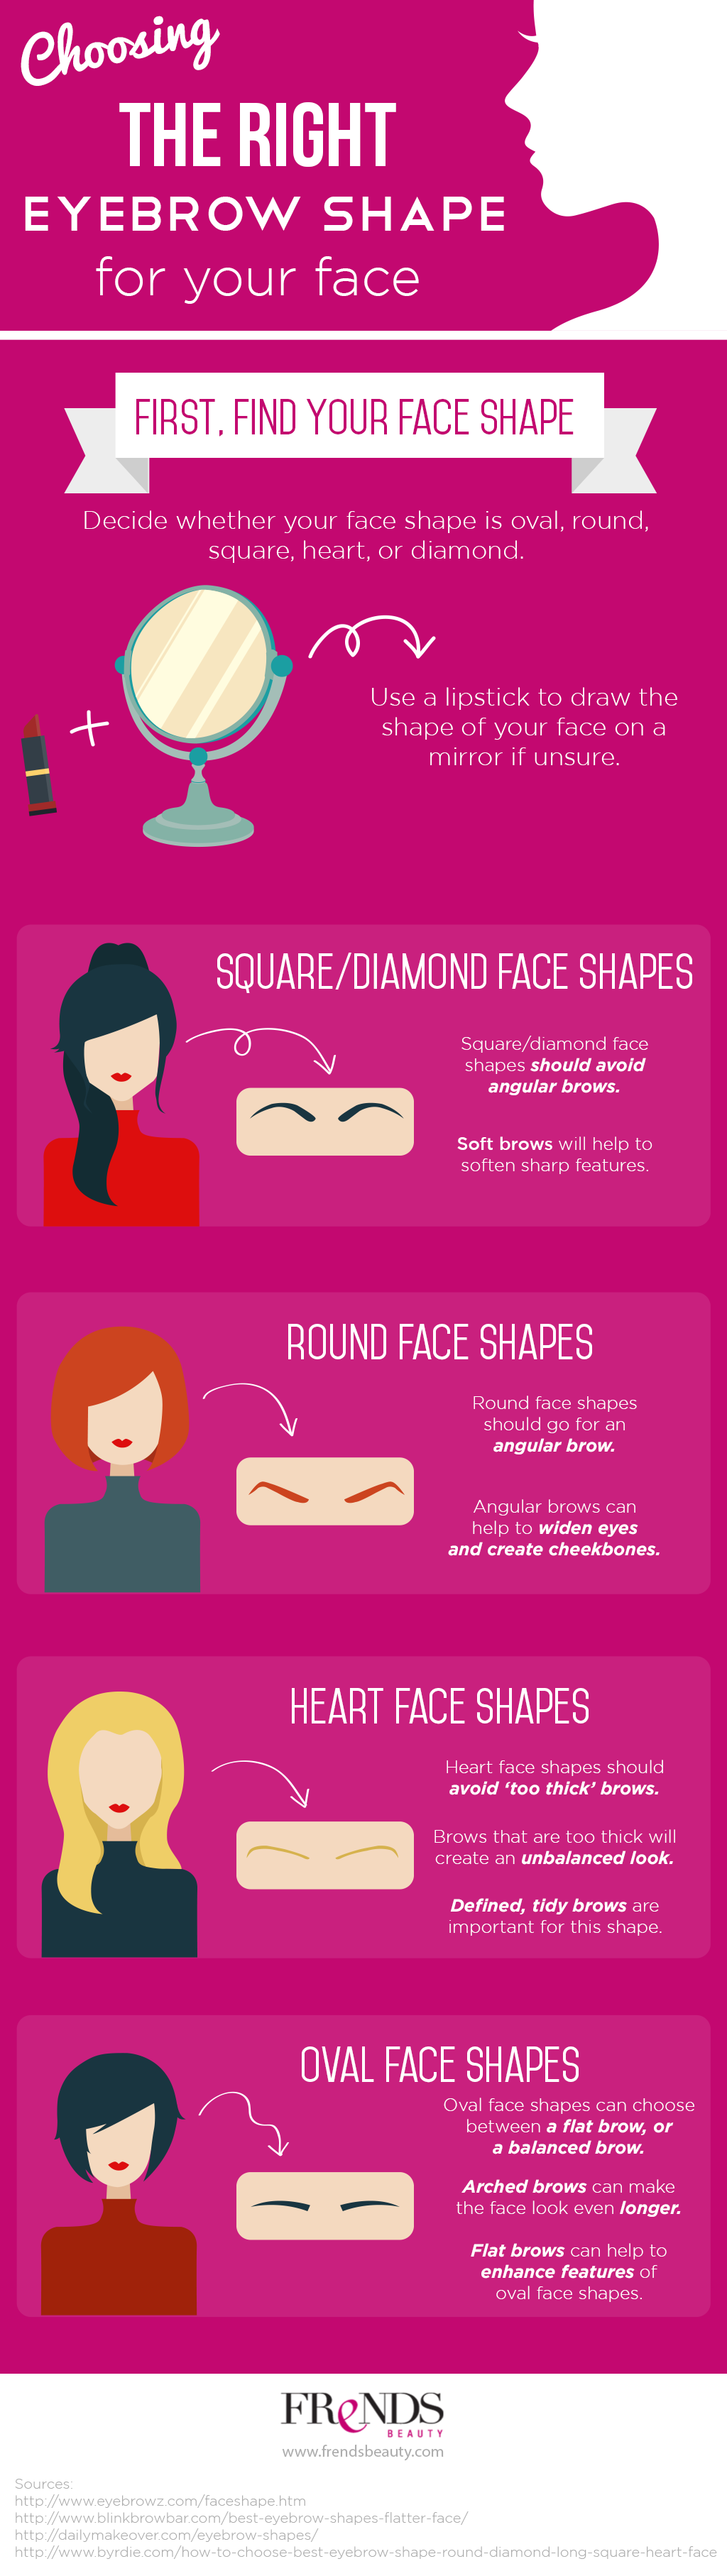 The Best Eyebrow Shapes